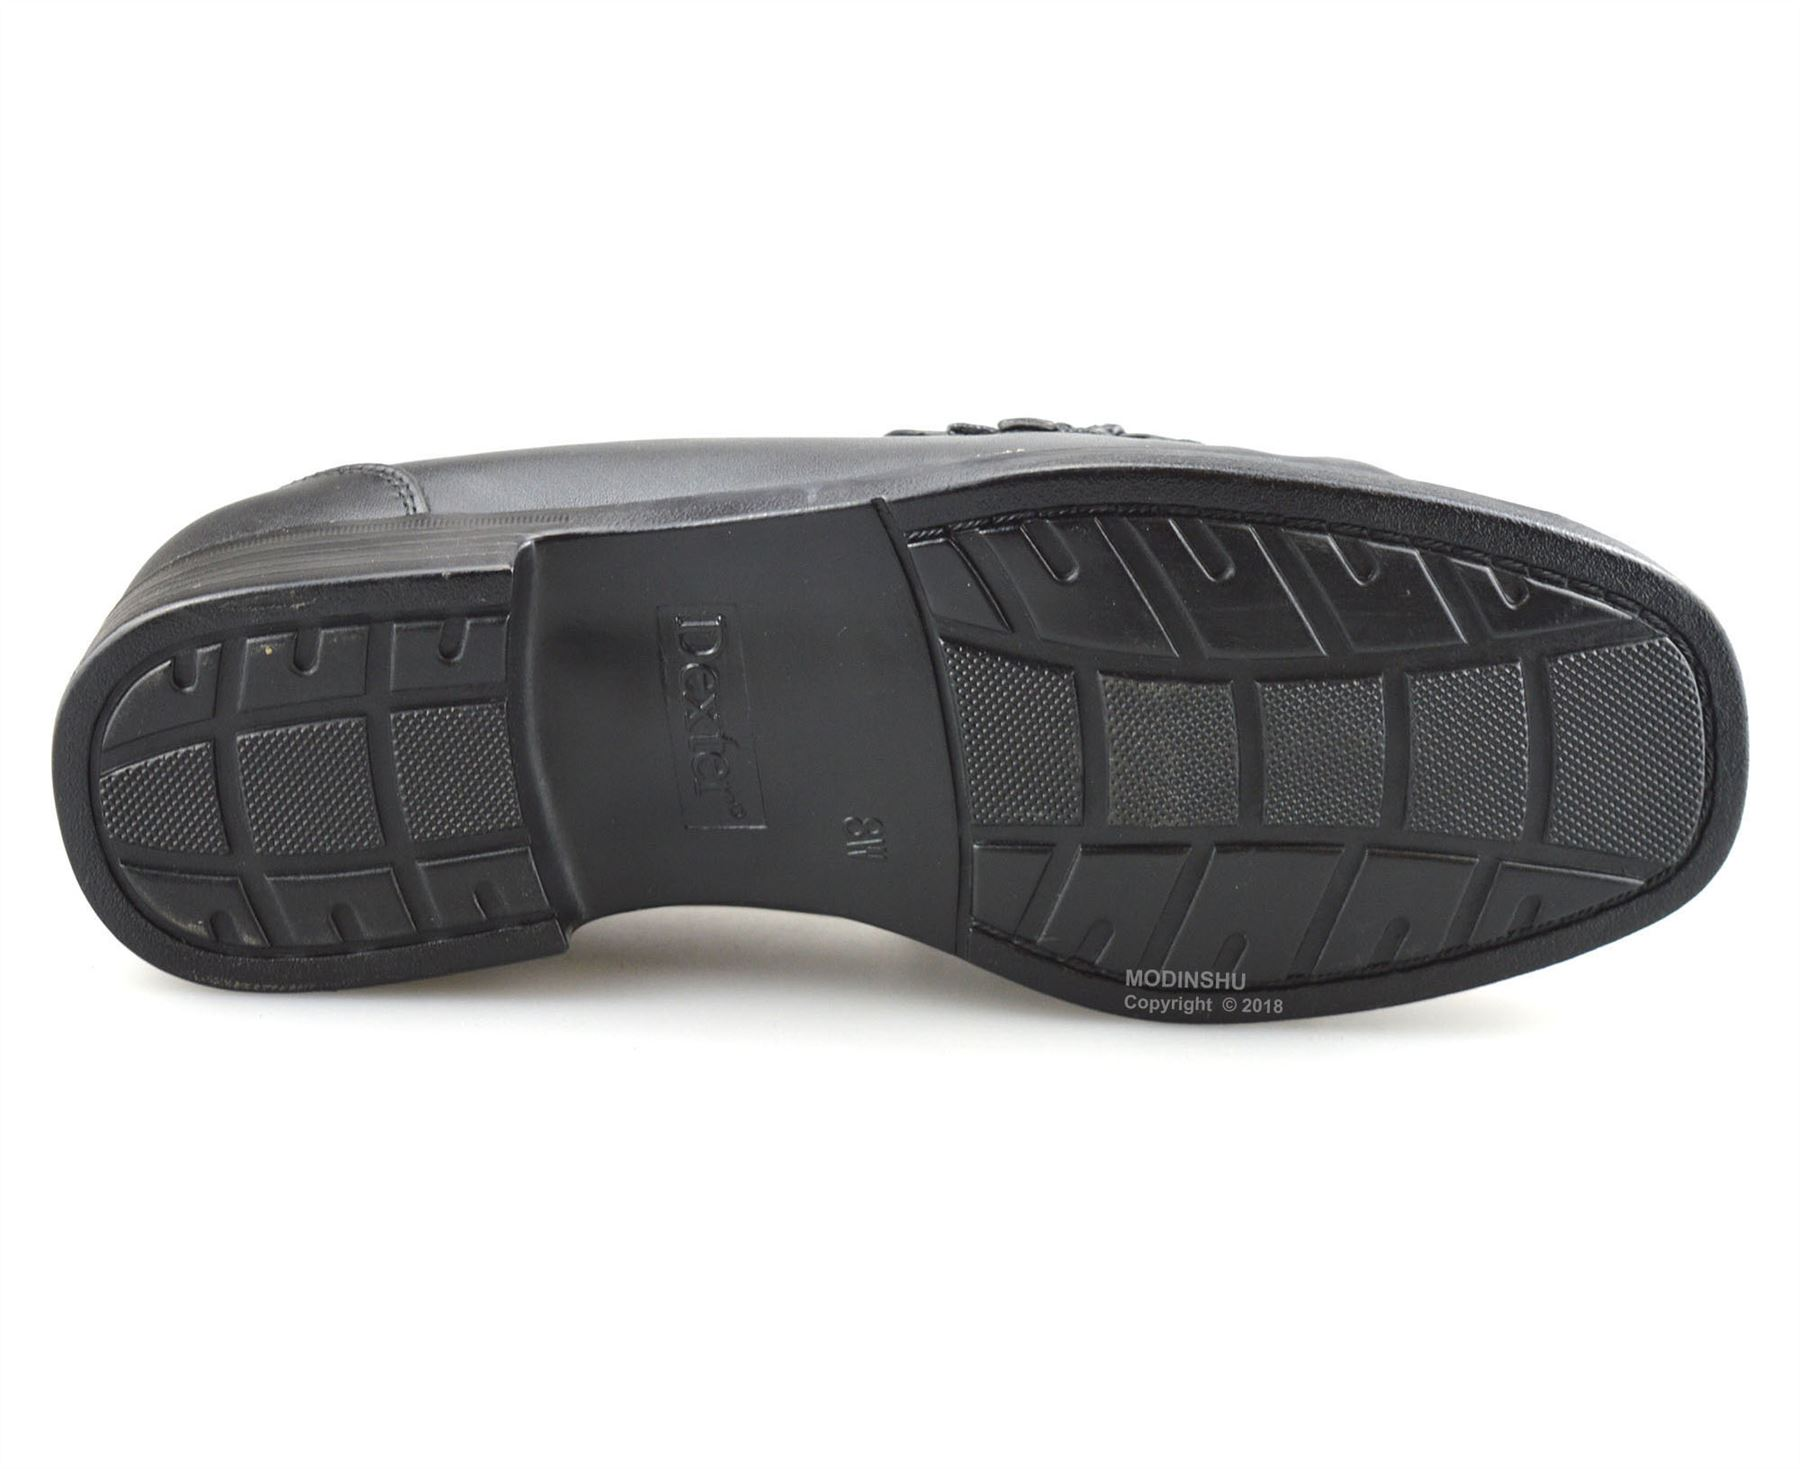 Mens-New-Slip-On-Casual-Smart-Memory-Foam-Mocassin-Designer-Loafers-Shoes-Size thumbnail 16